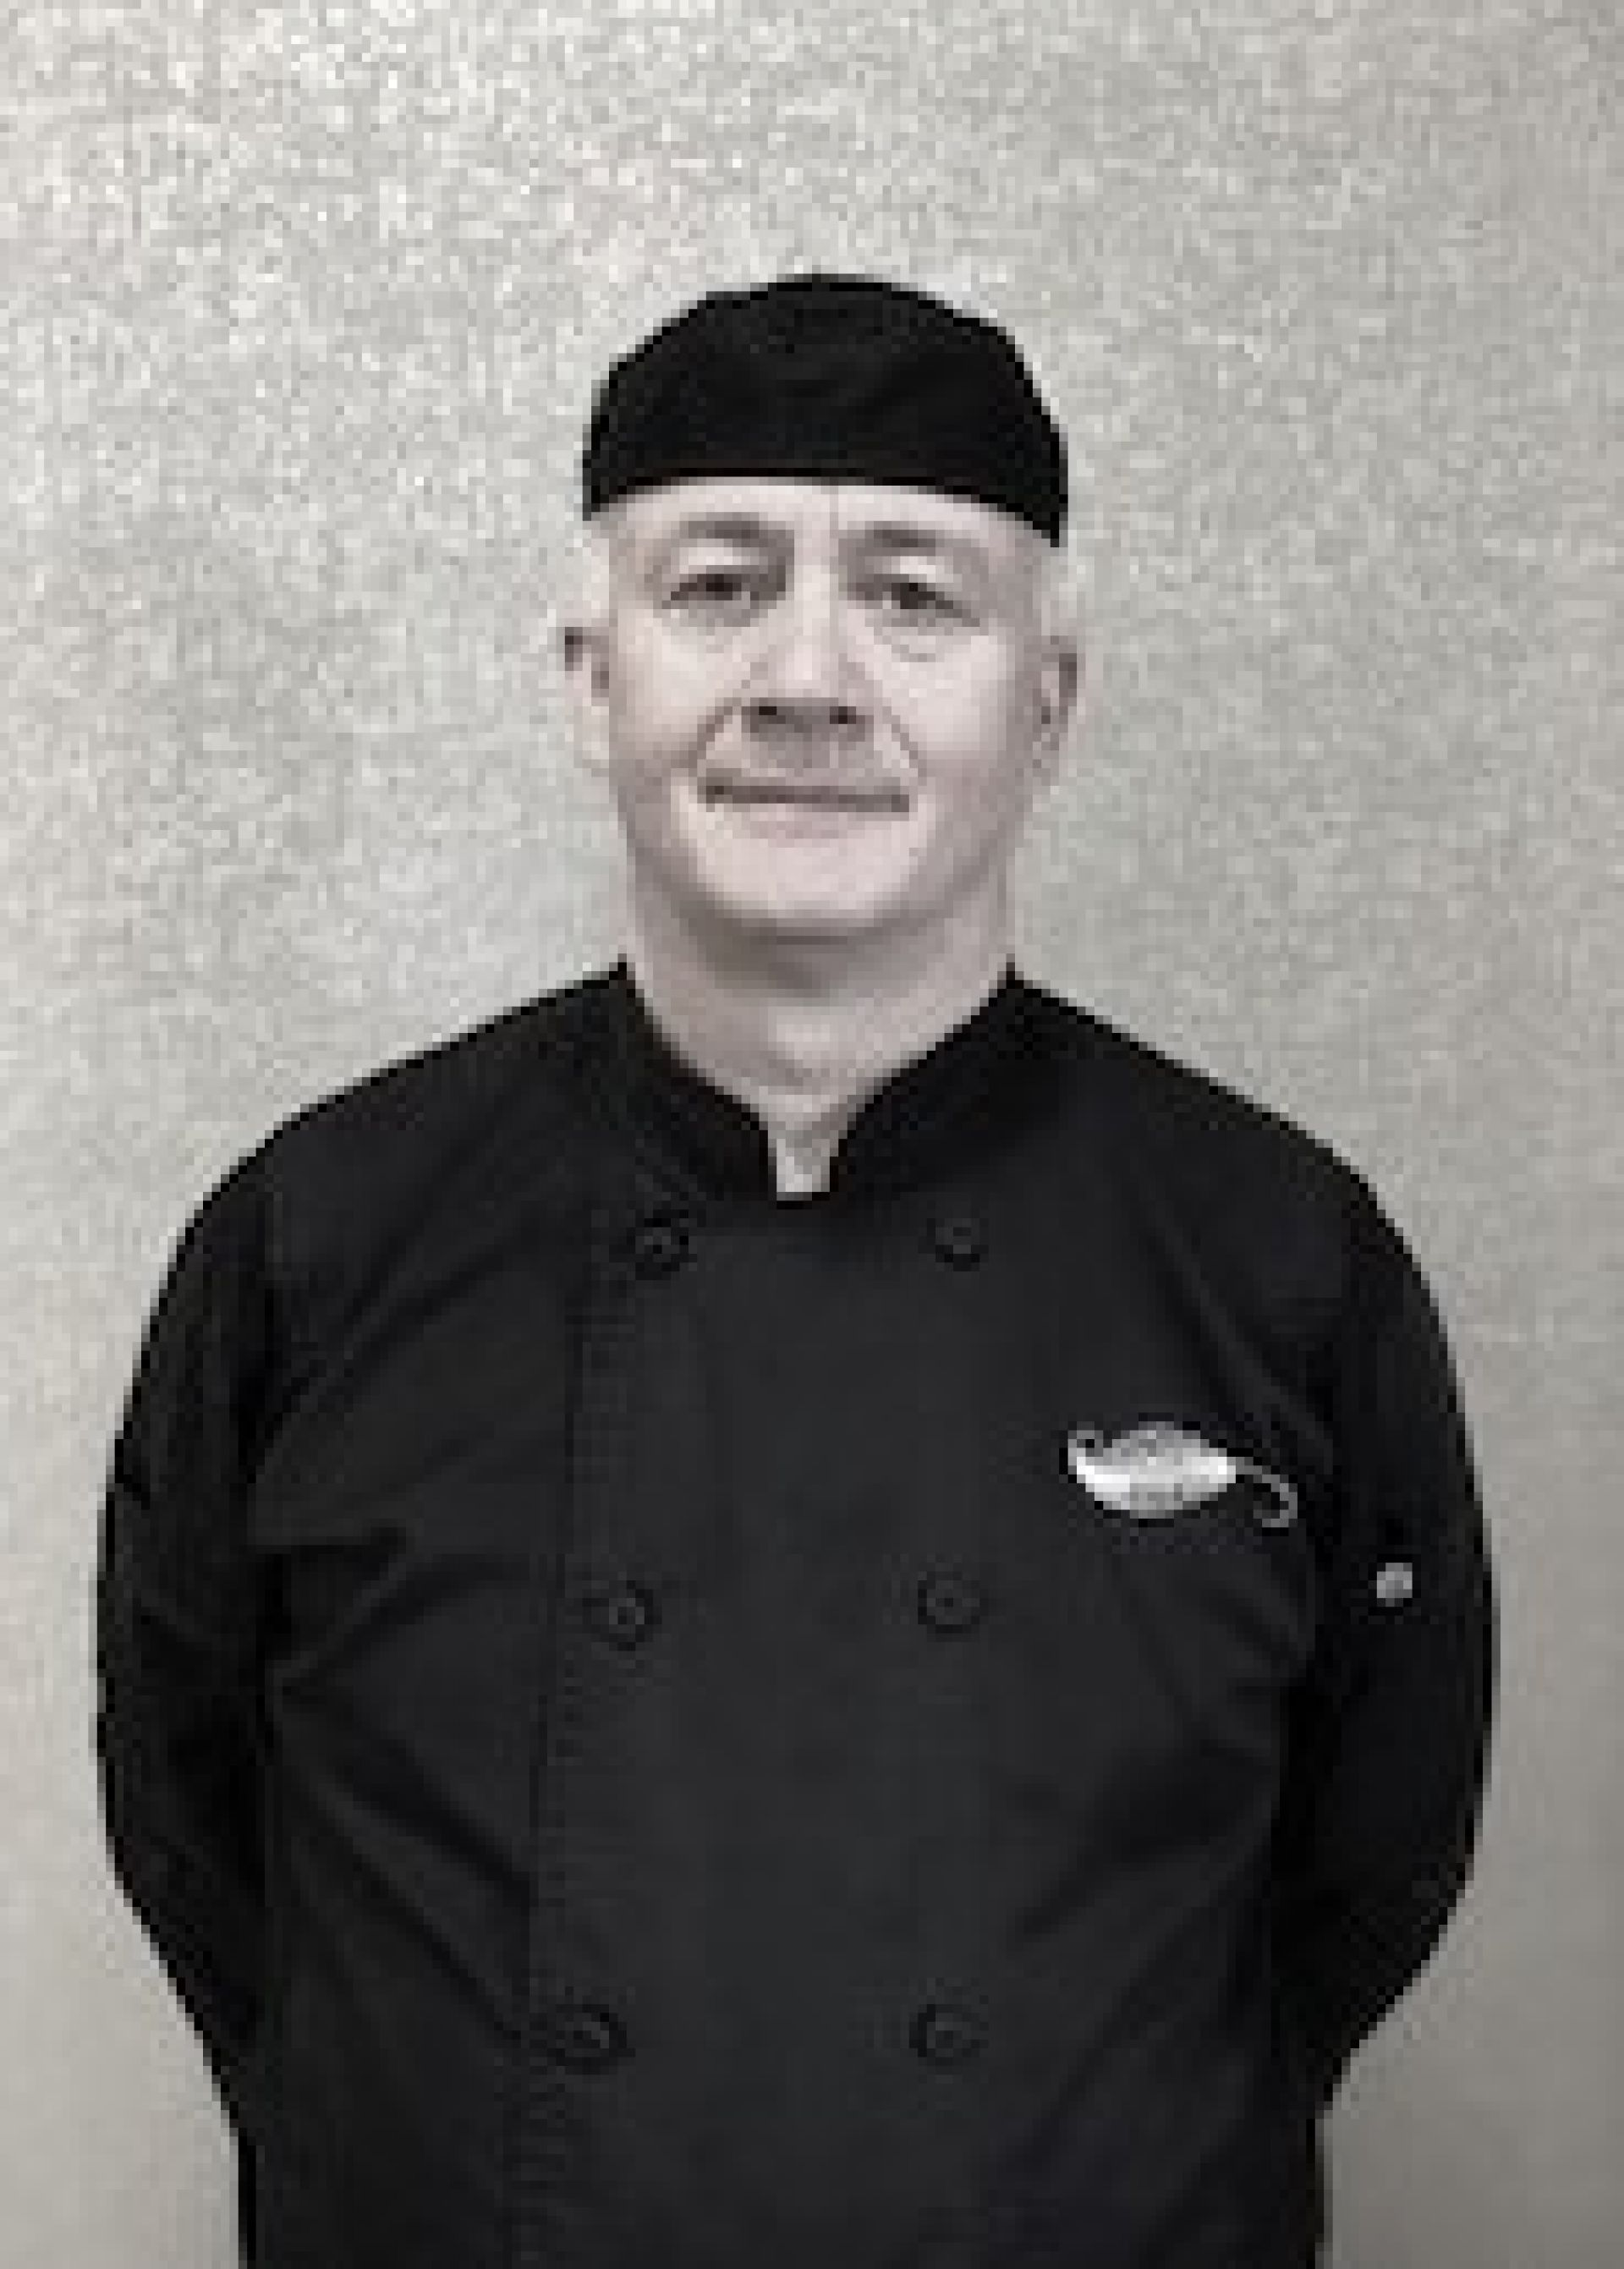 head-chef-Fairfield.jpg